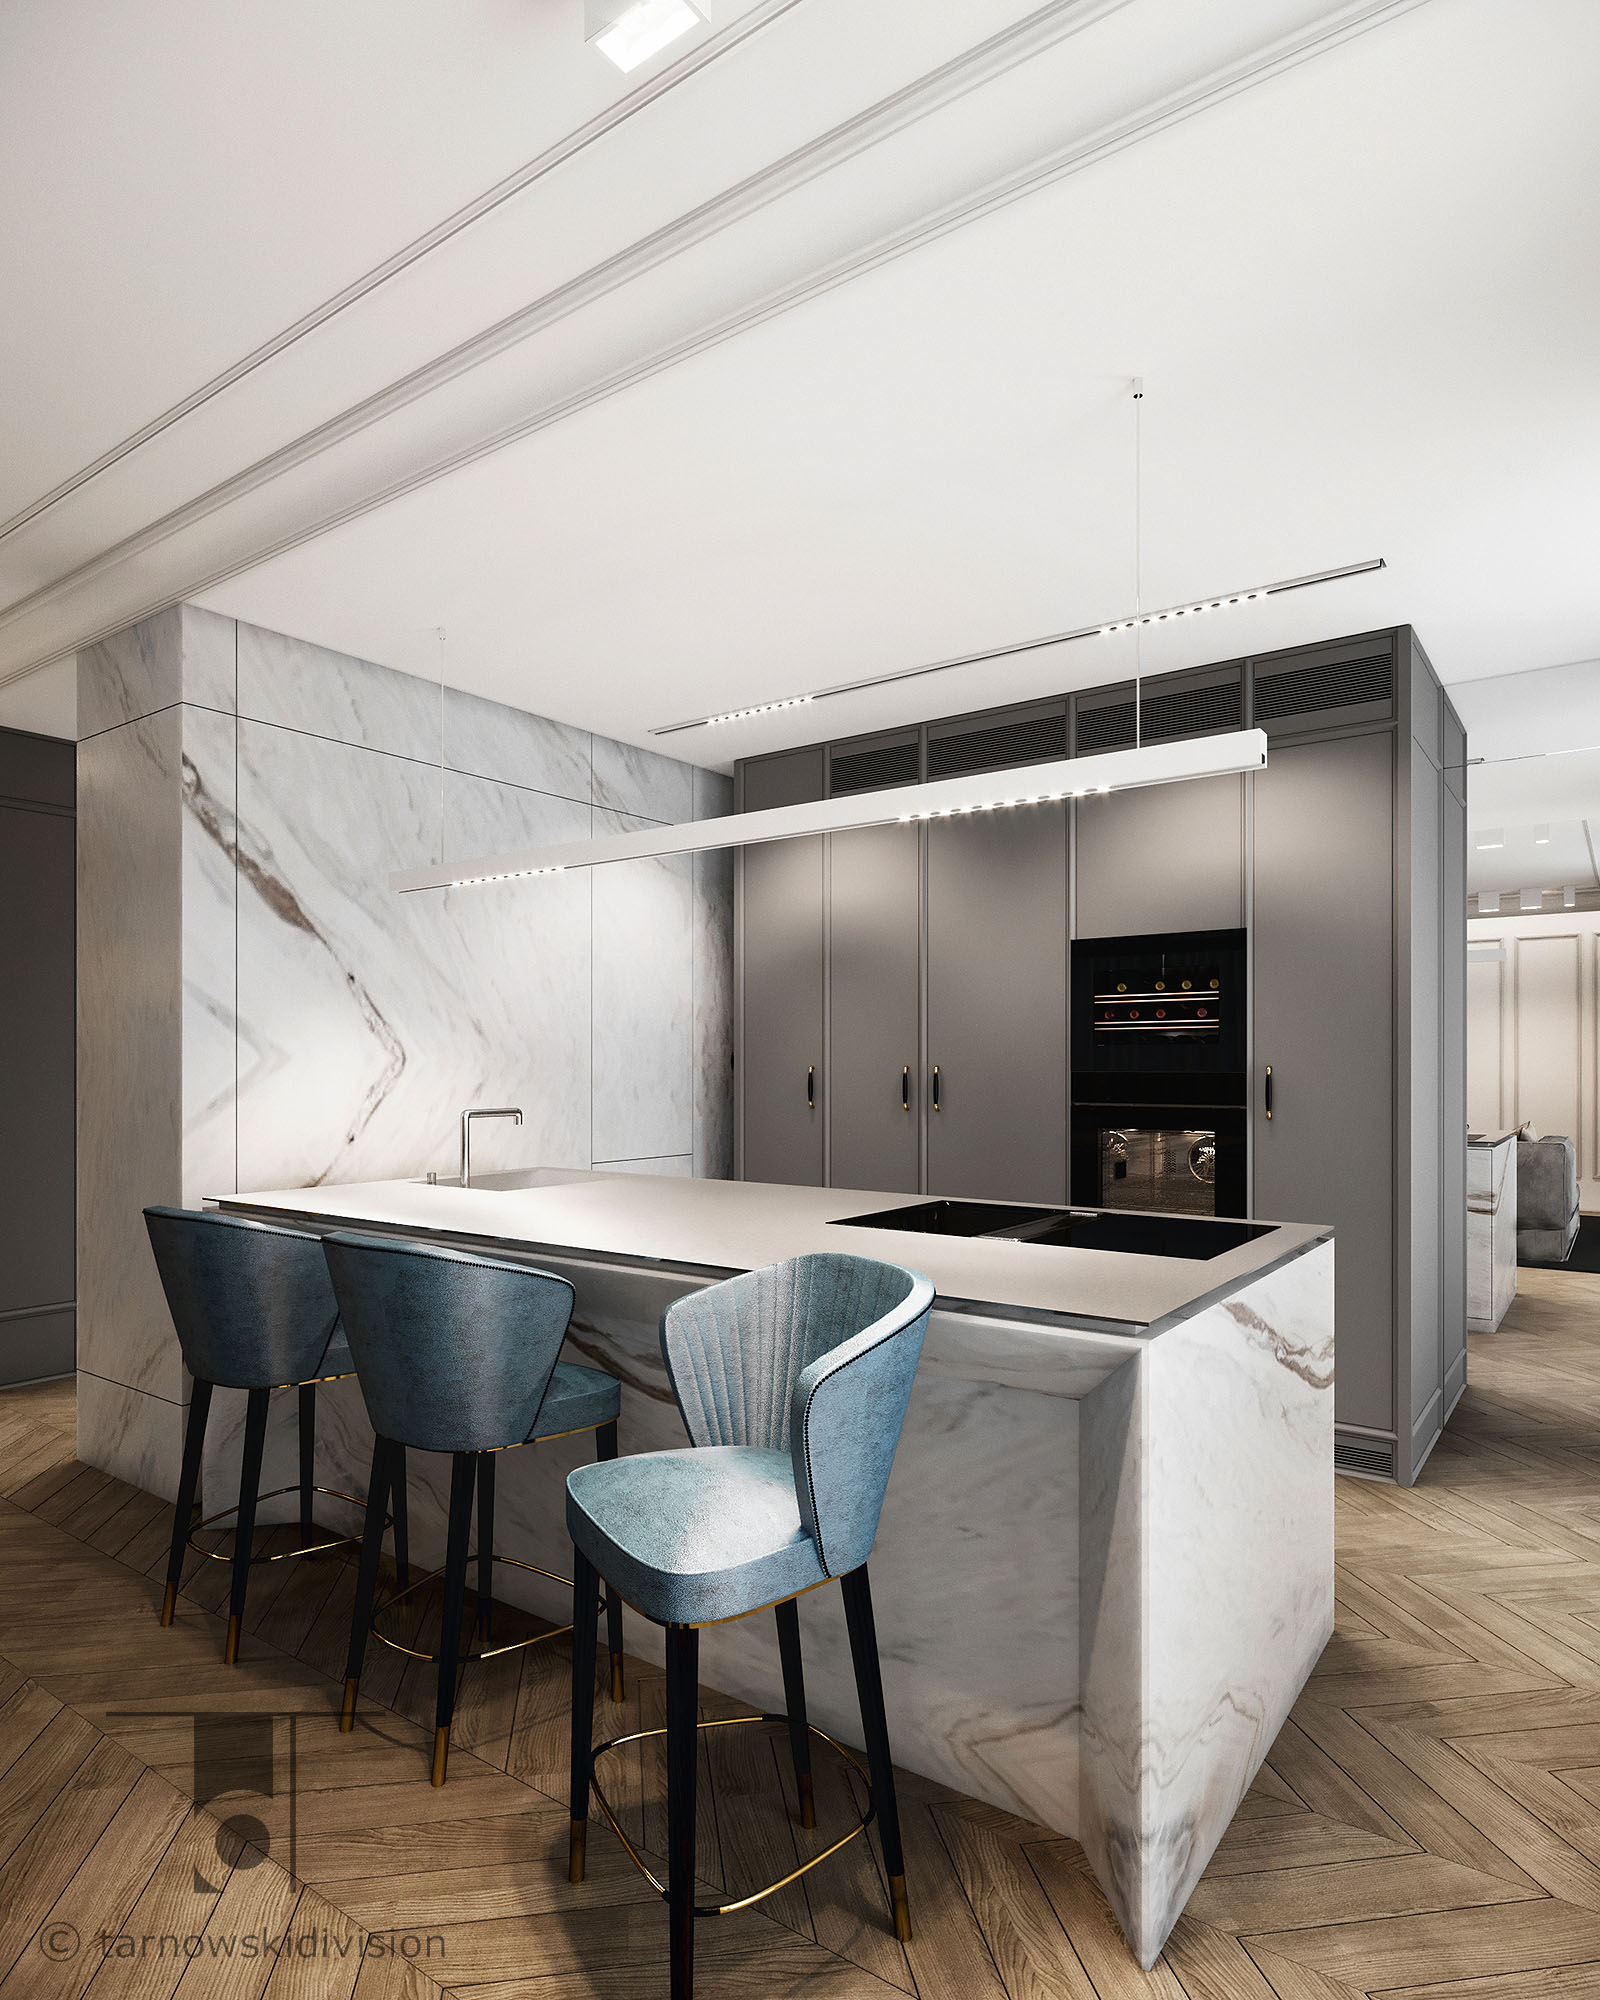 apartament_kitchen_interior design_tarnowski division